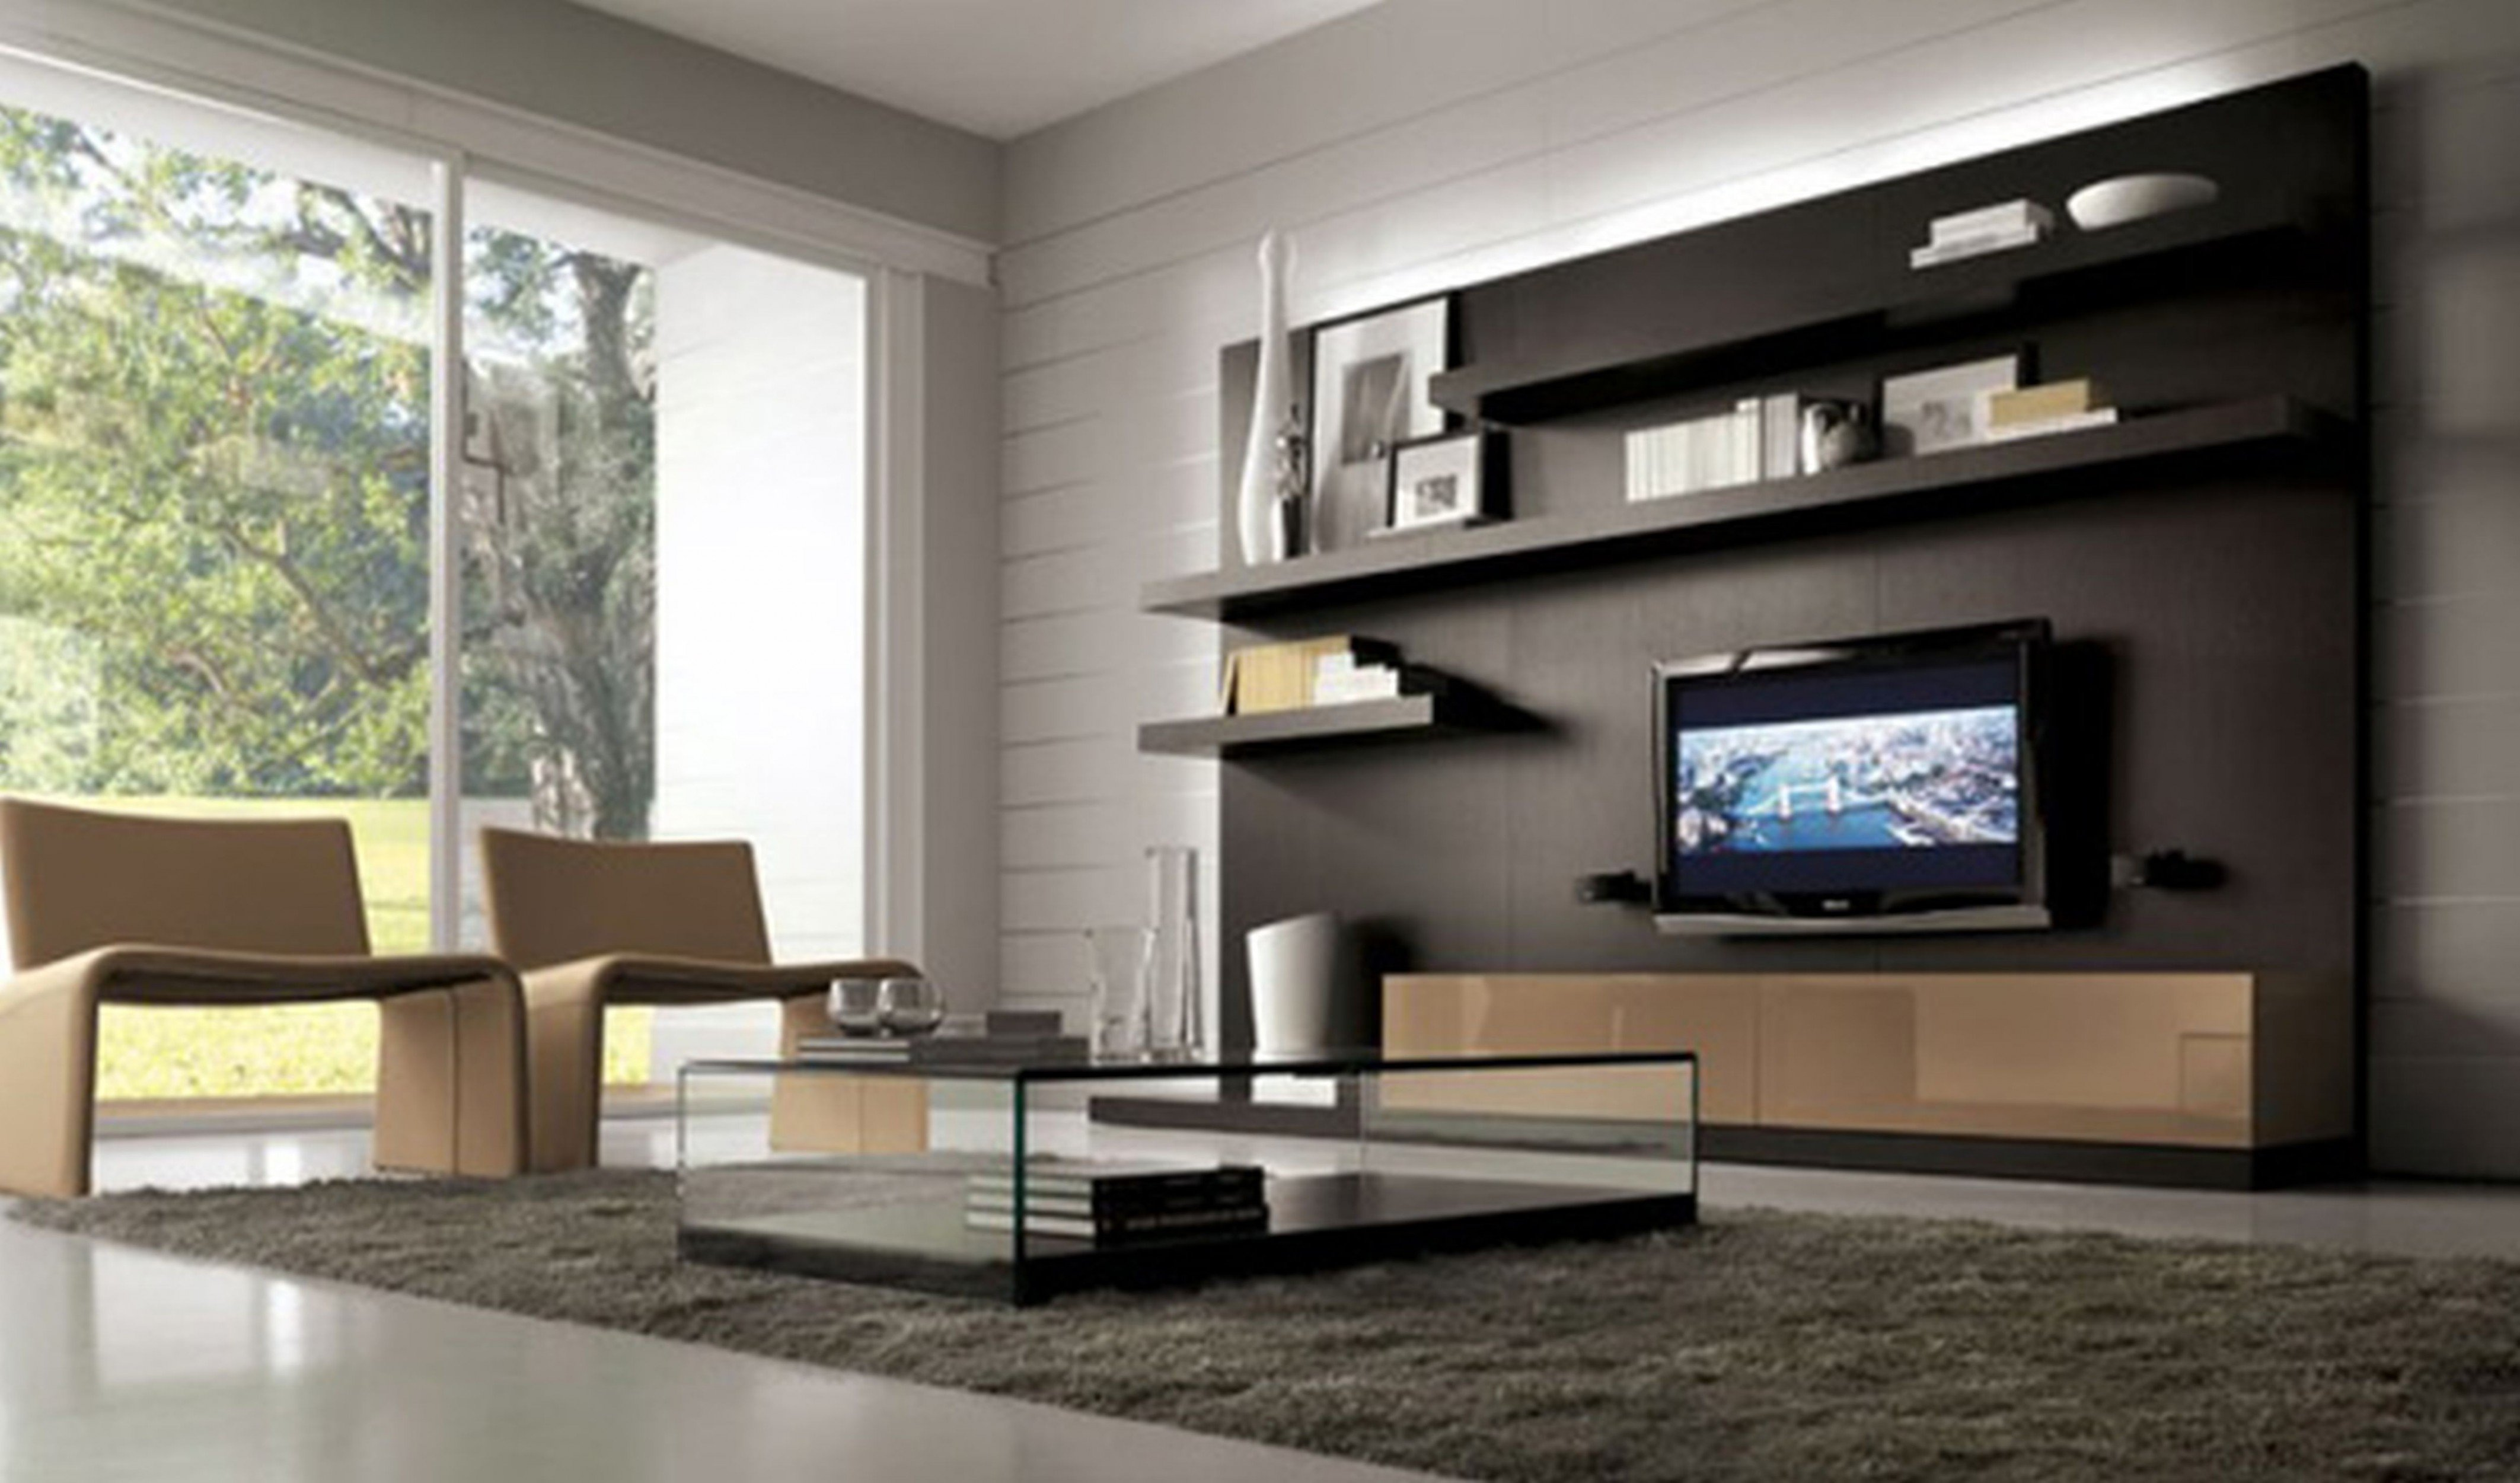 10 Amazing Living Room Ideas With Tv living room ikea living room decorating ideas in a small room 2020